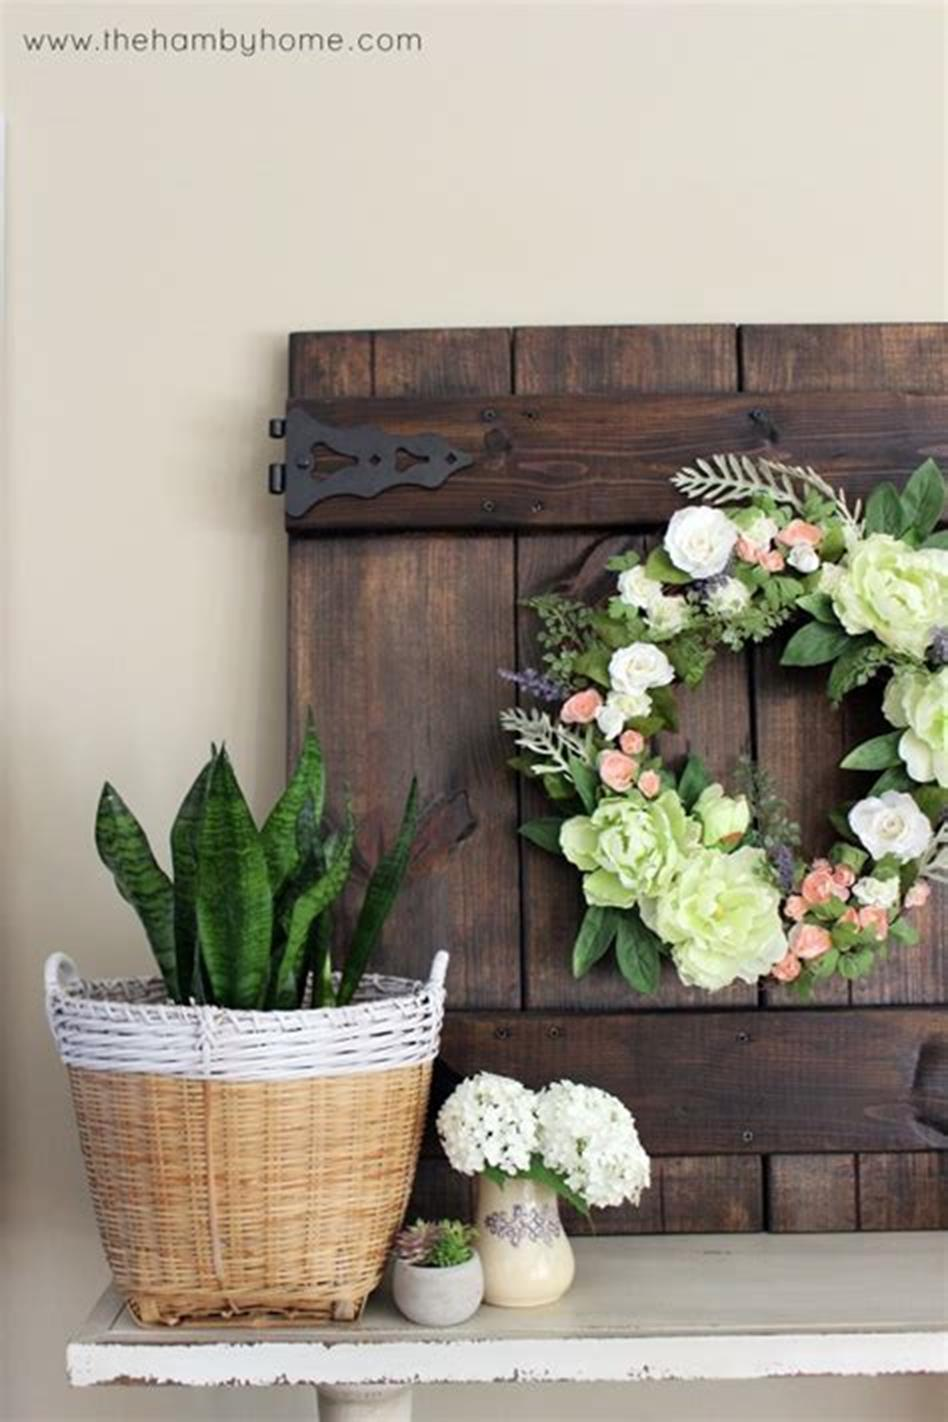 37 Beautiful Farmhouse Spring Decorating Ideas On a Budget for 2019 15